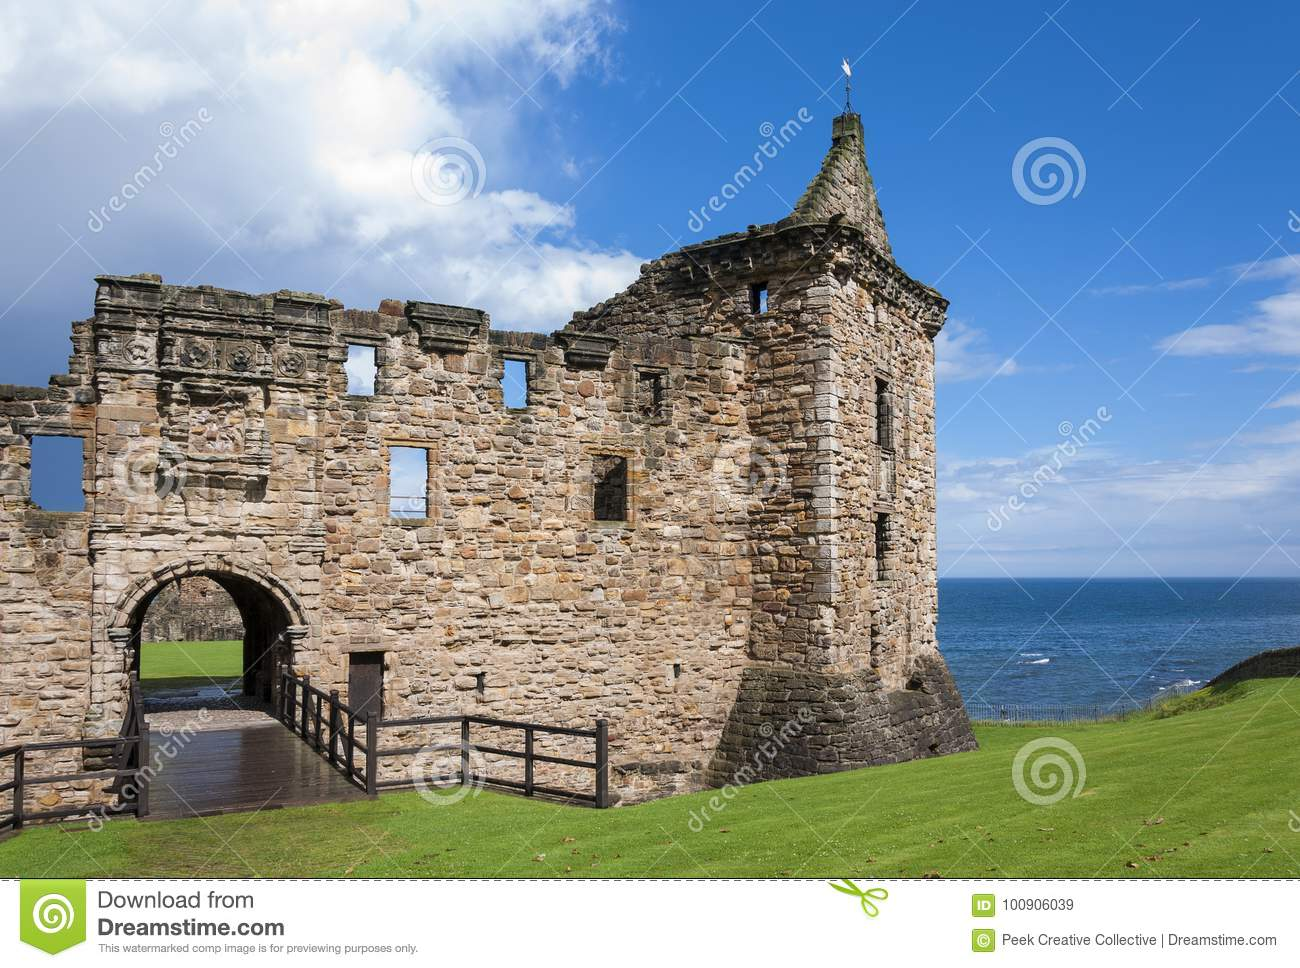 Detail of the St. Andrews Castle in the Royal Burgh of St Andrews in Fife, Scotland